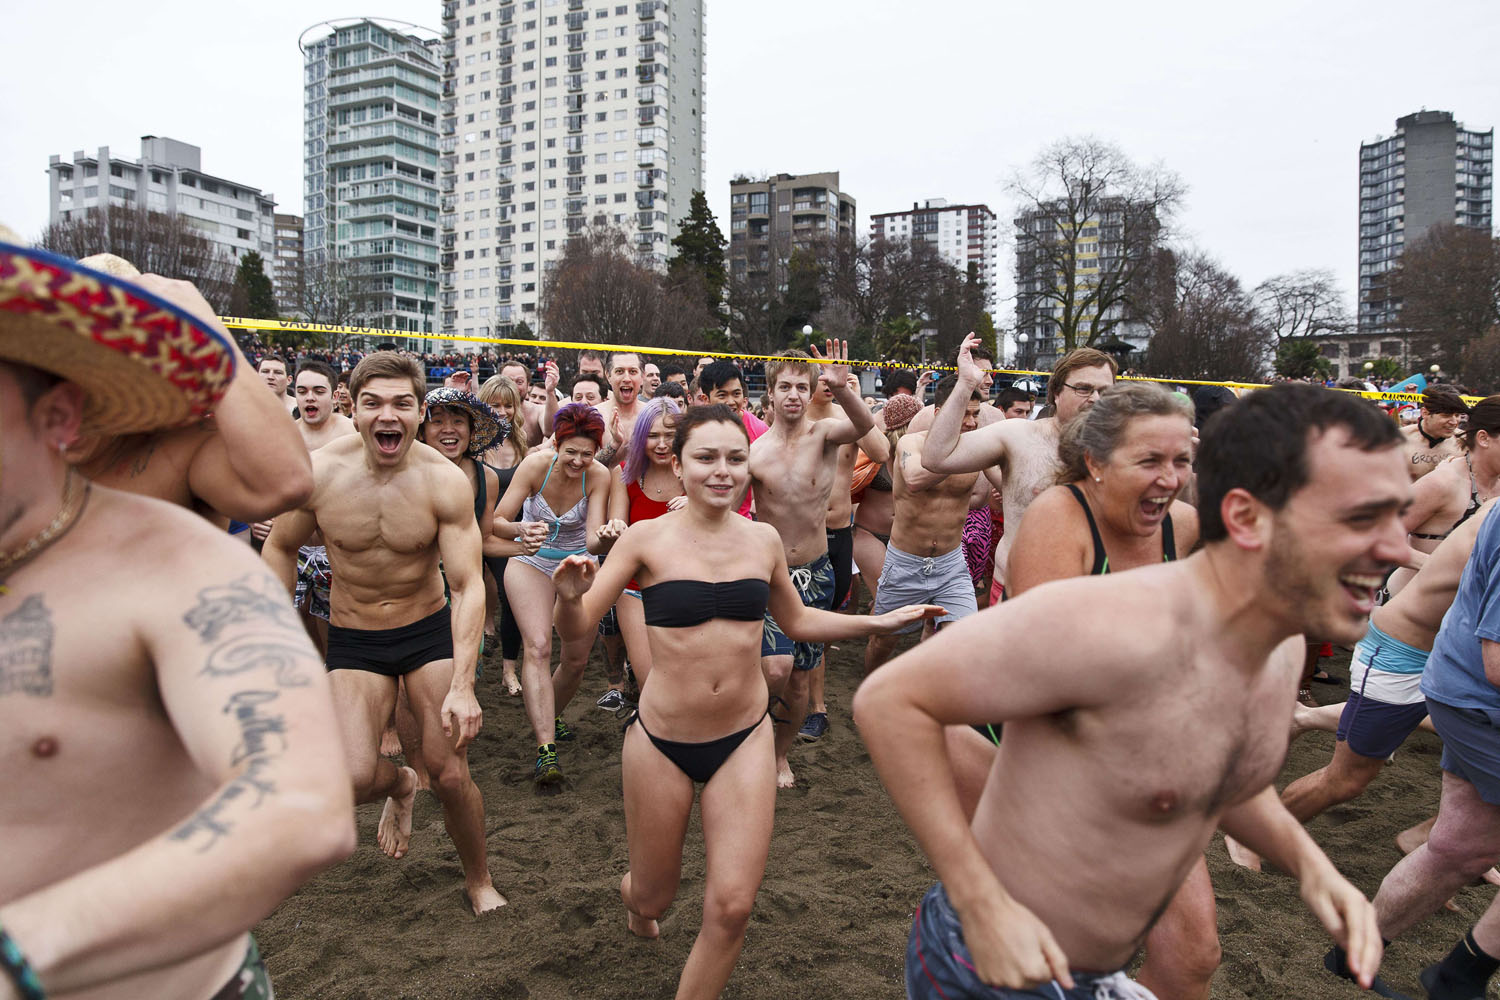 Jan. 1, 2014 Crowds rush towards the frigid waters of English Bay during the 2014 Polar Bear Swim in Vancouver, B.C., Canada.